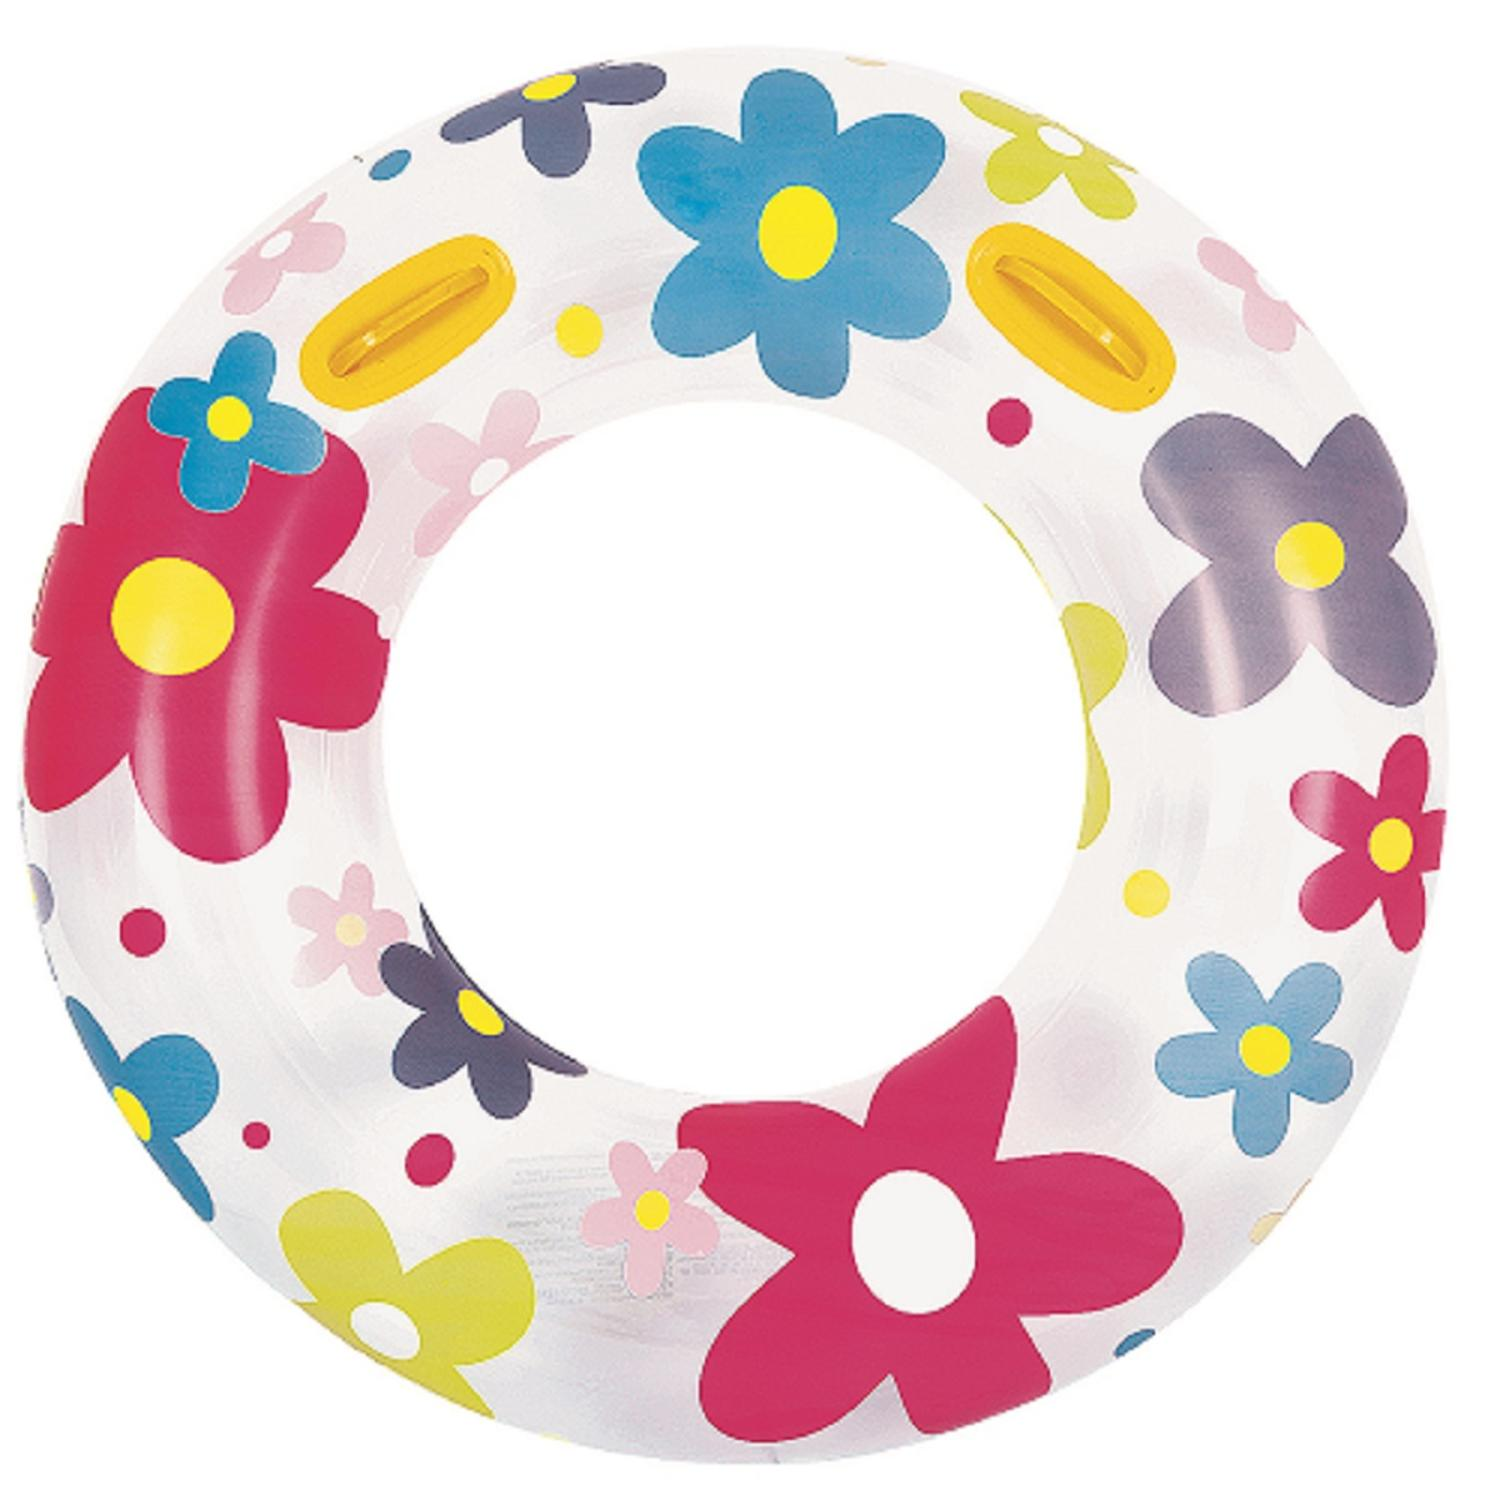 Fashion Flower Print Inflatable Swimming Pool Inner Tube Ring Float with Handles, 42-Inch